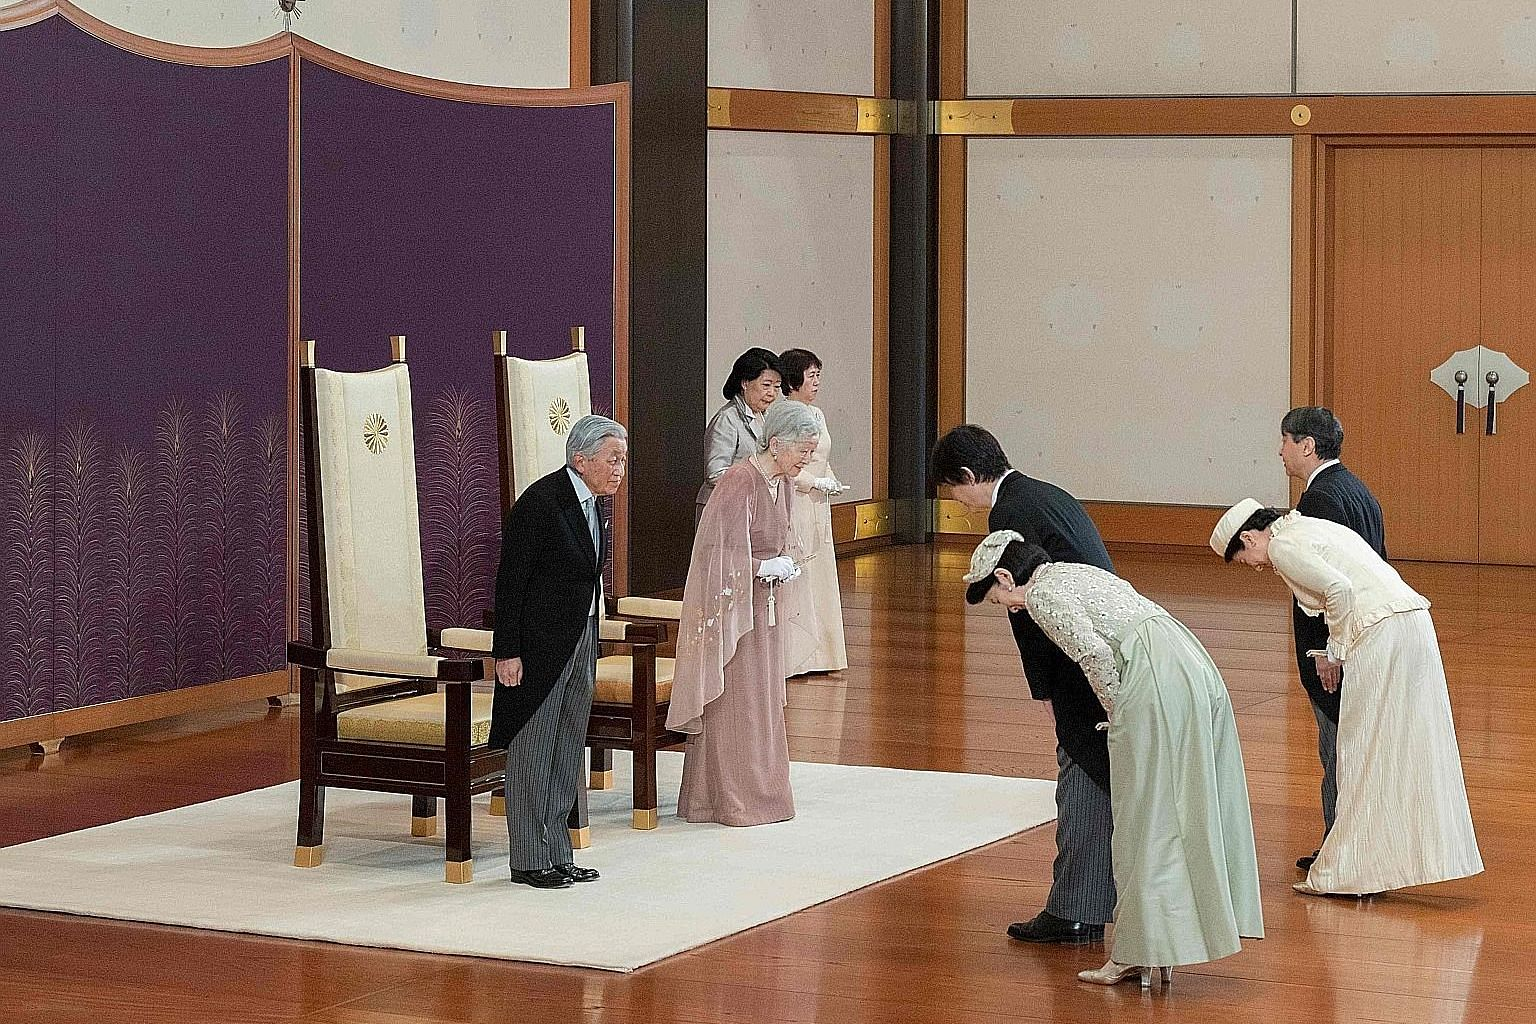 Left: Emperor Akihito and Empress Michiko being congratulated by (from far right) Crown Prince Naruhito, Crown Princess Masako, Prince Akishino and Princess Kiko during the celebration of the 60th anniversary of their wedding yesterday at the Imperia